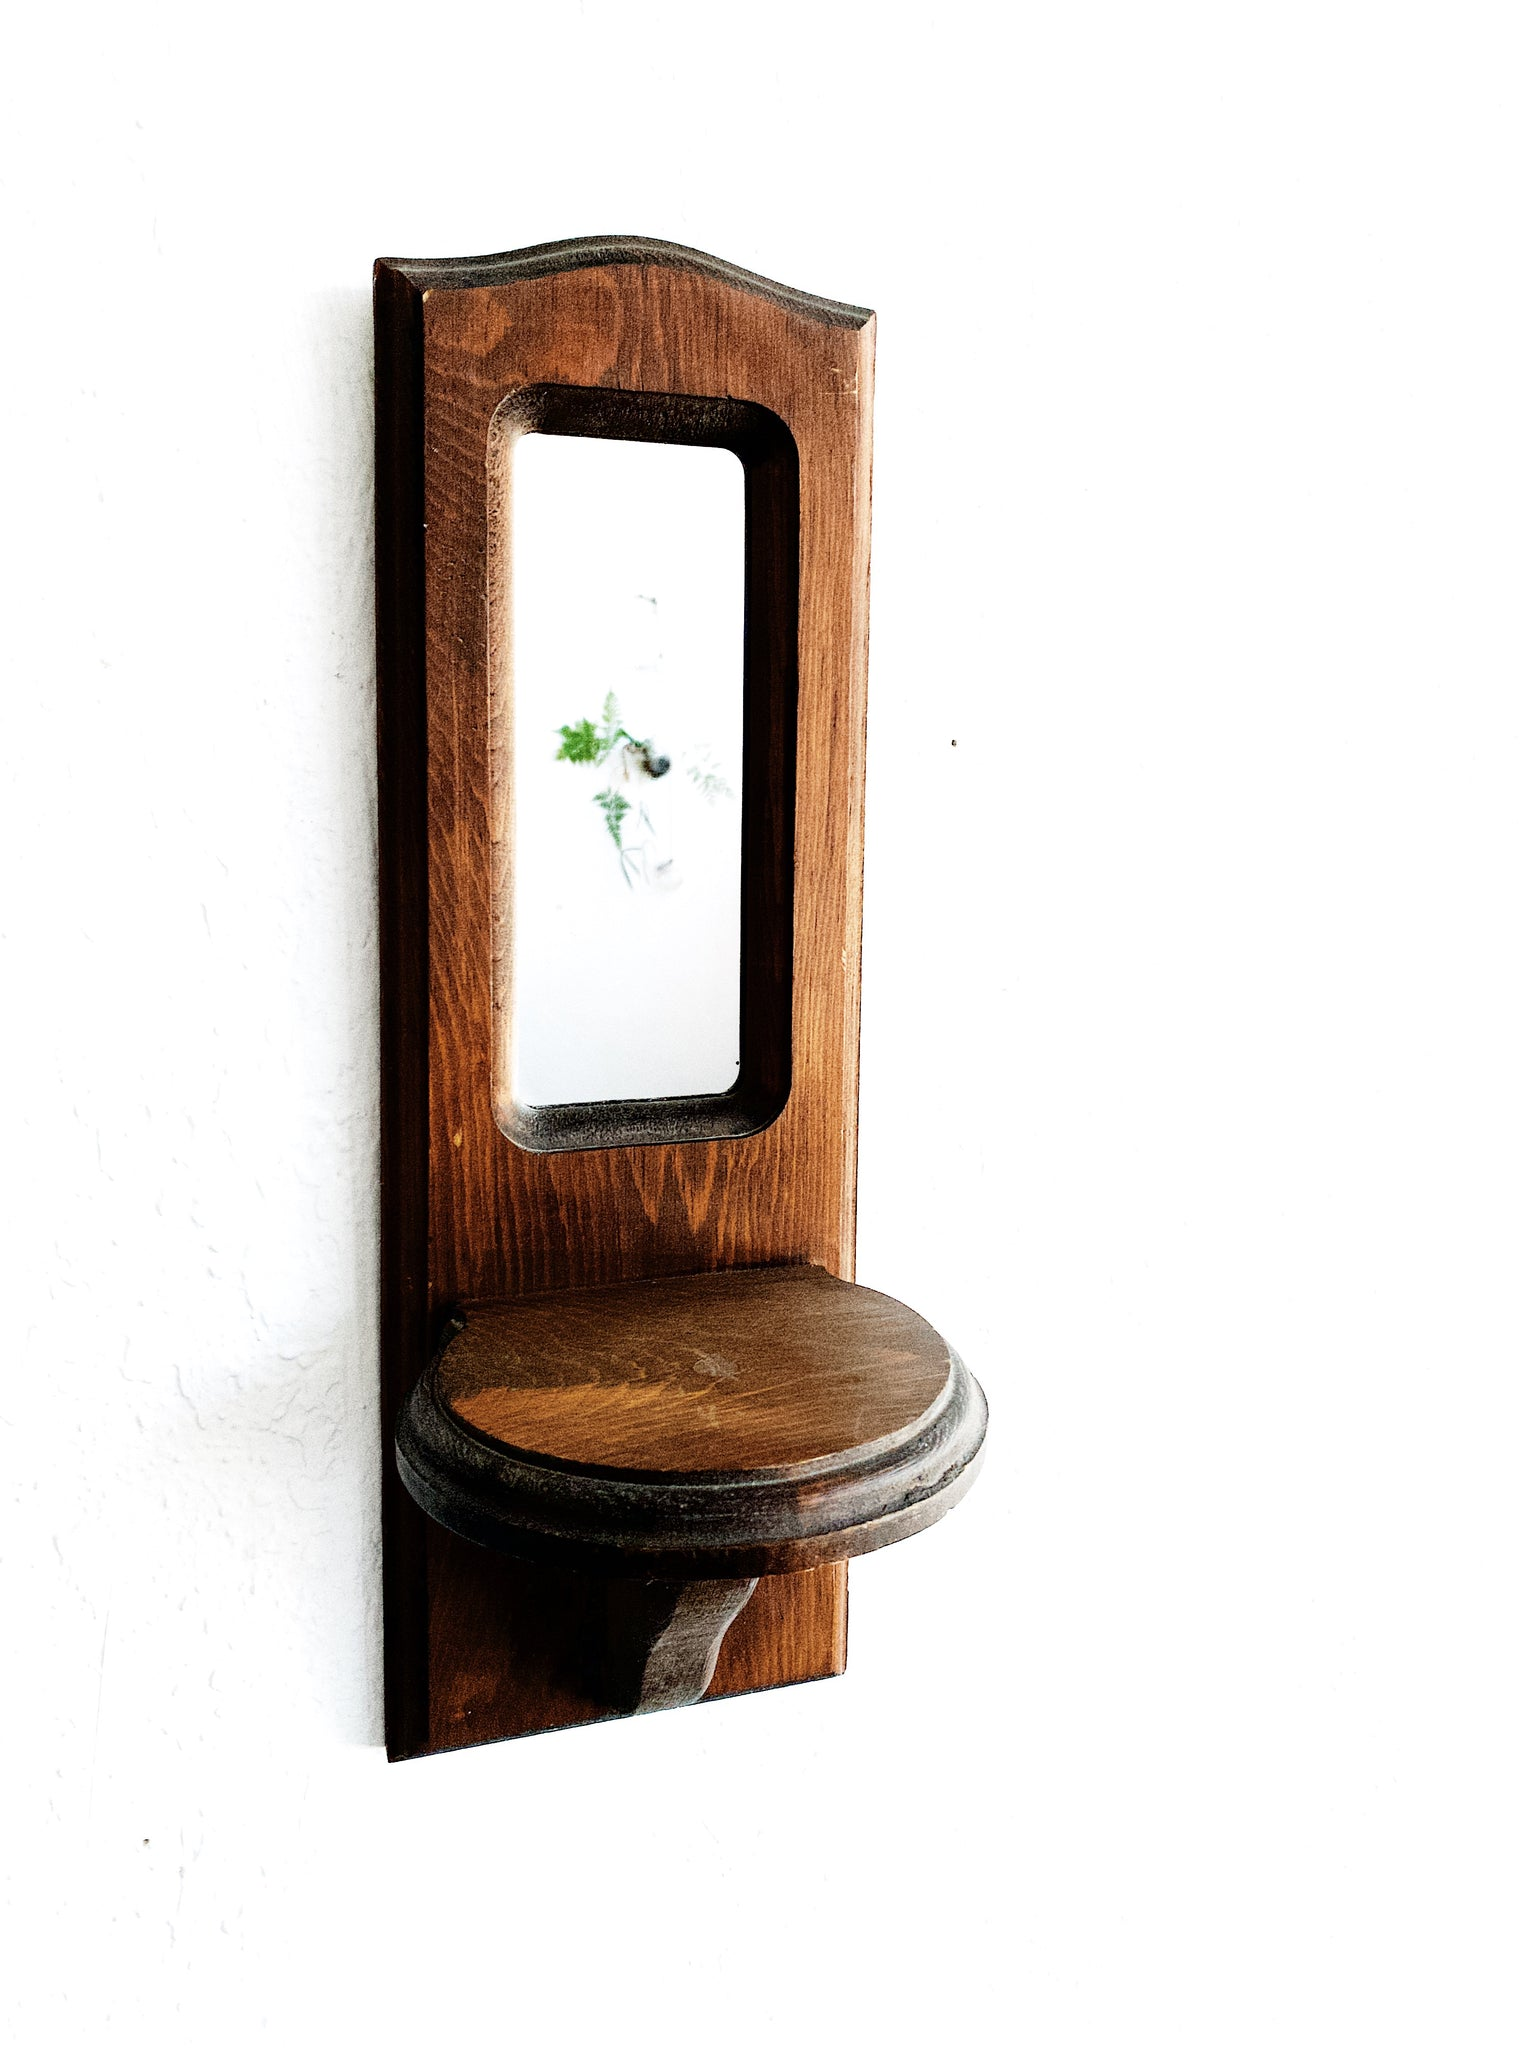 Vintage Mirrored Wood Wall Shelf